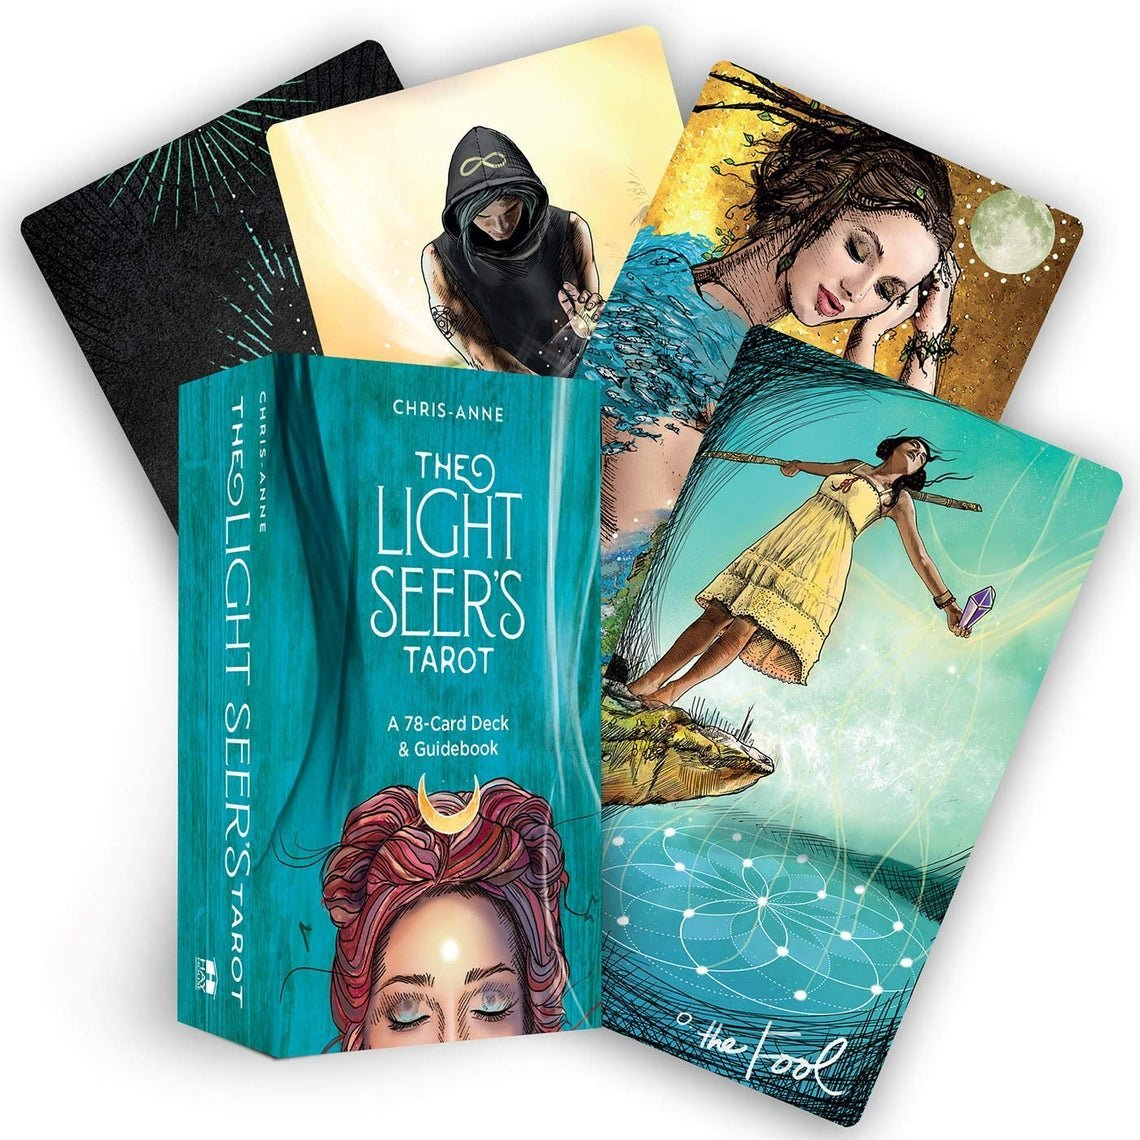 The Light Seer's Tarot Card Deck with Guidebook